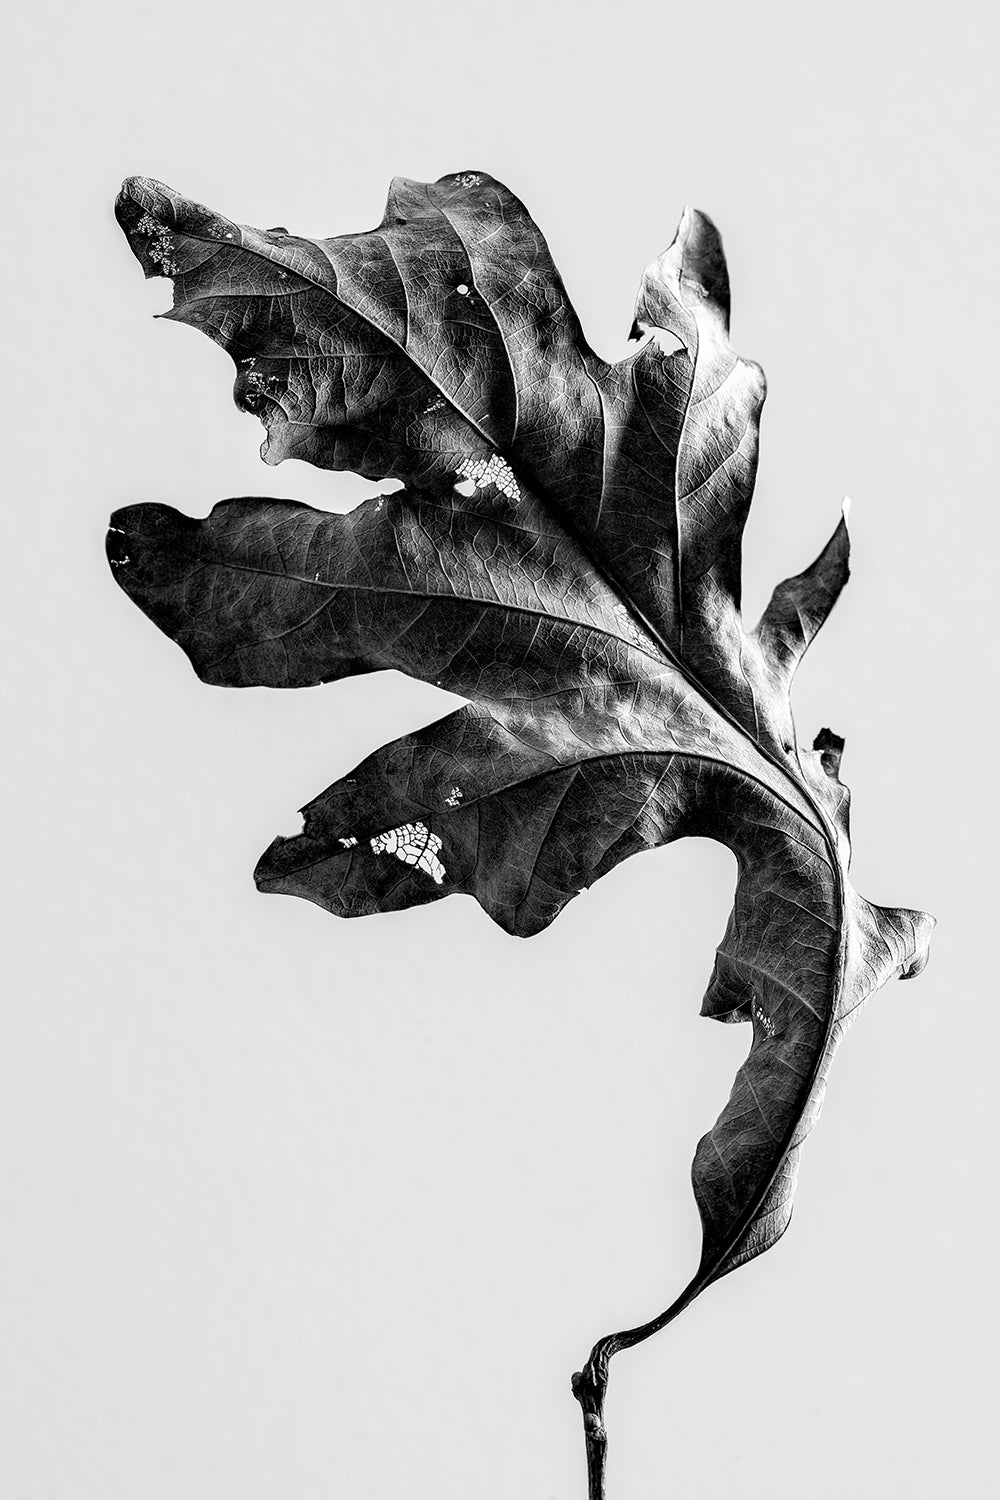 Old Oak Leaf on a Branch - Black and White Photograph by Keith Dotson. Click to buy a fine art print.